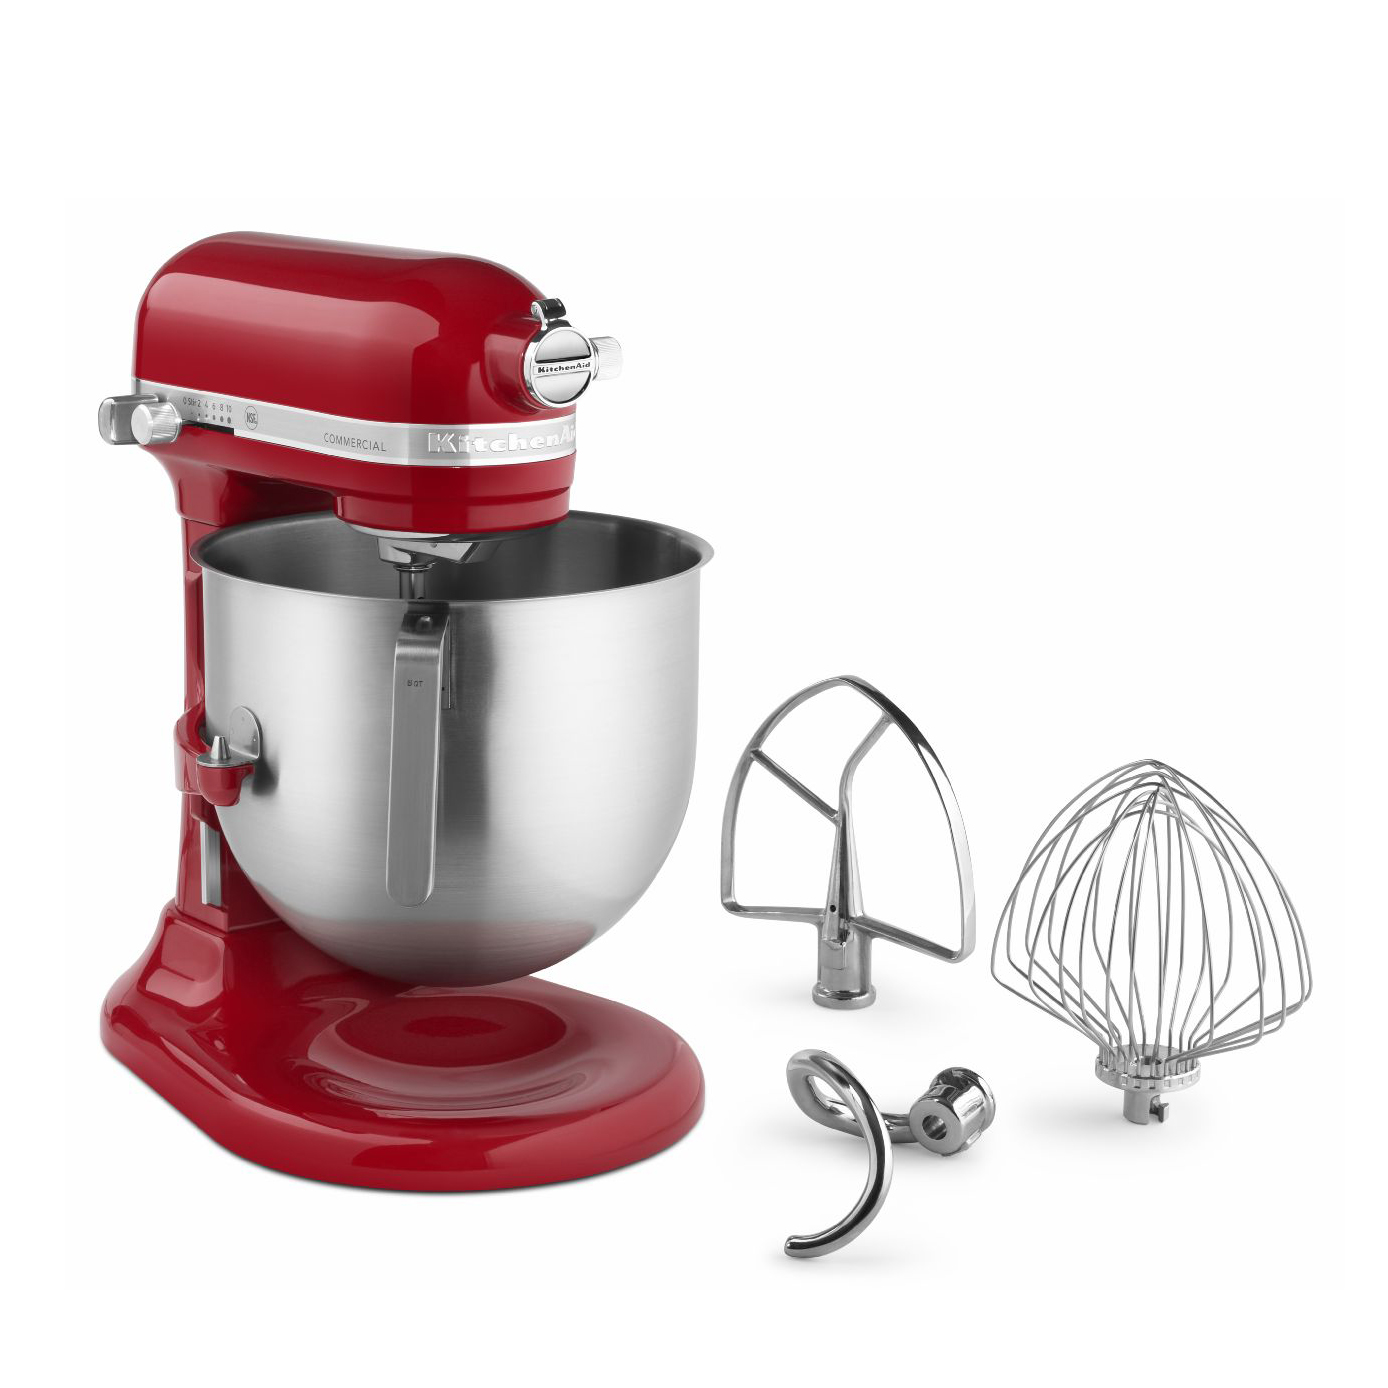 KitchenAid® KSM8990ER Commercial Stand Mixer, 8 Quart Bowl with Lift, Red